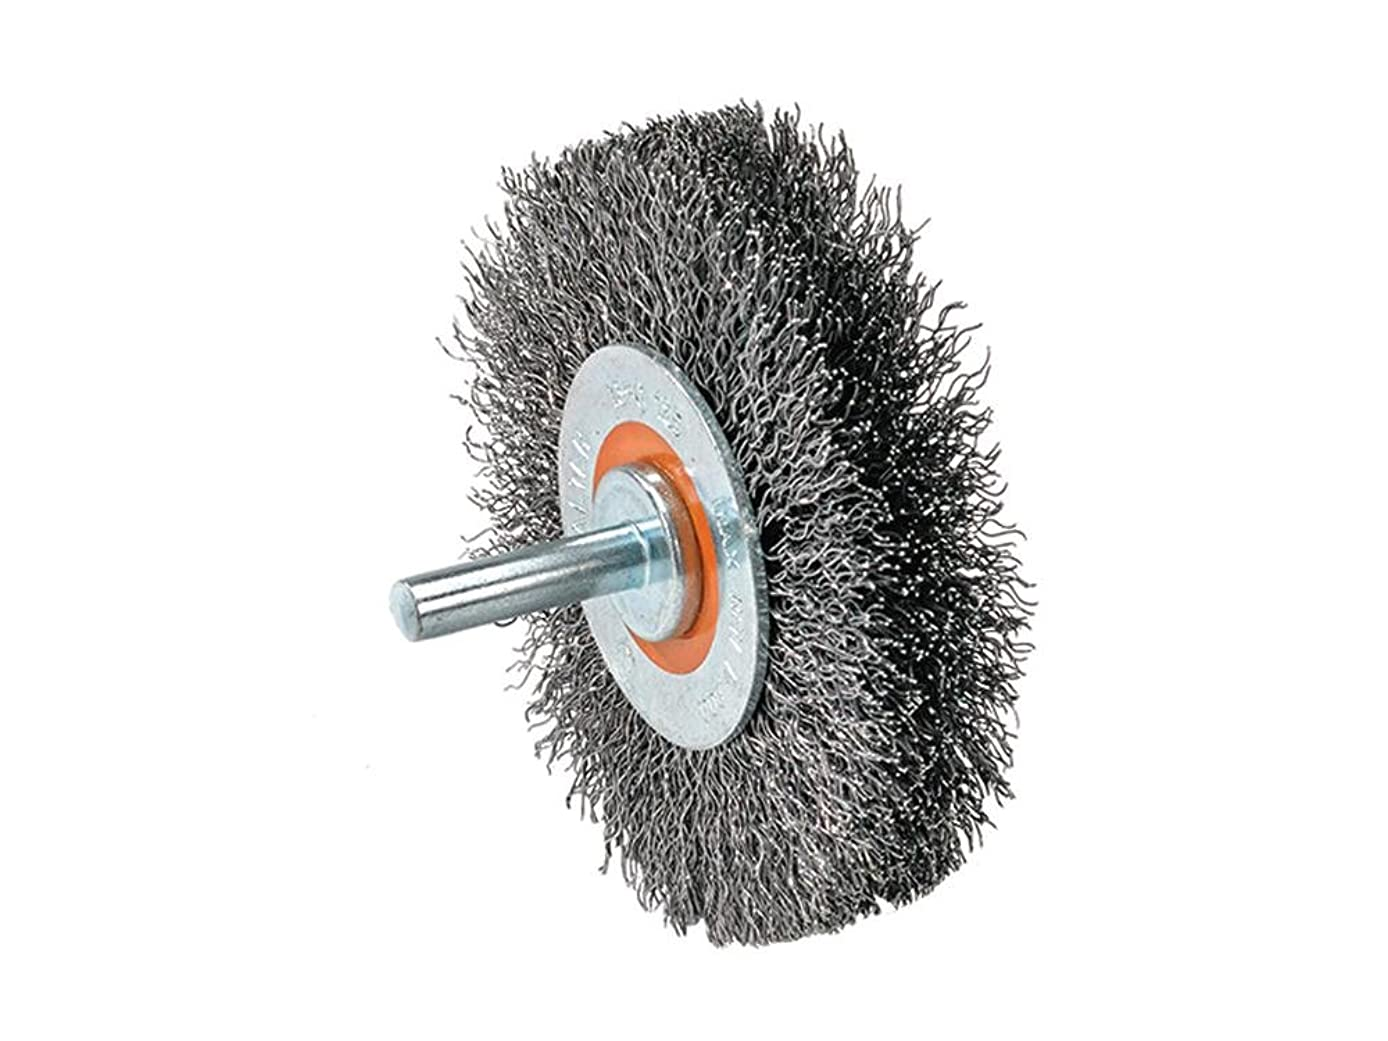 Walter 13C175 Crimped Wire Mounted Brush – ? in. Width, 3 in. Stainless Steel Brush for Surface Cleaning. Abrasive Finishing Brushes